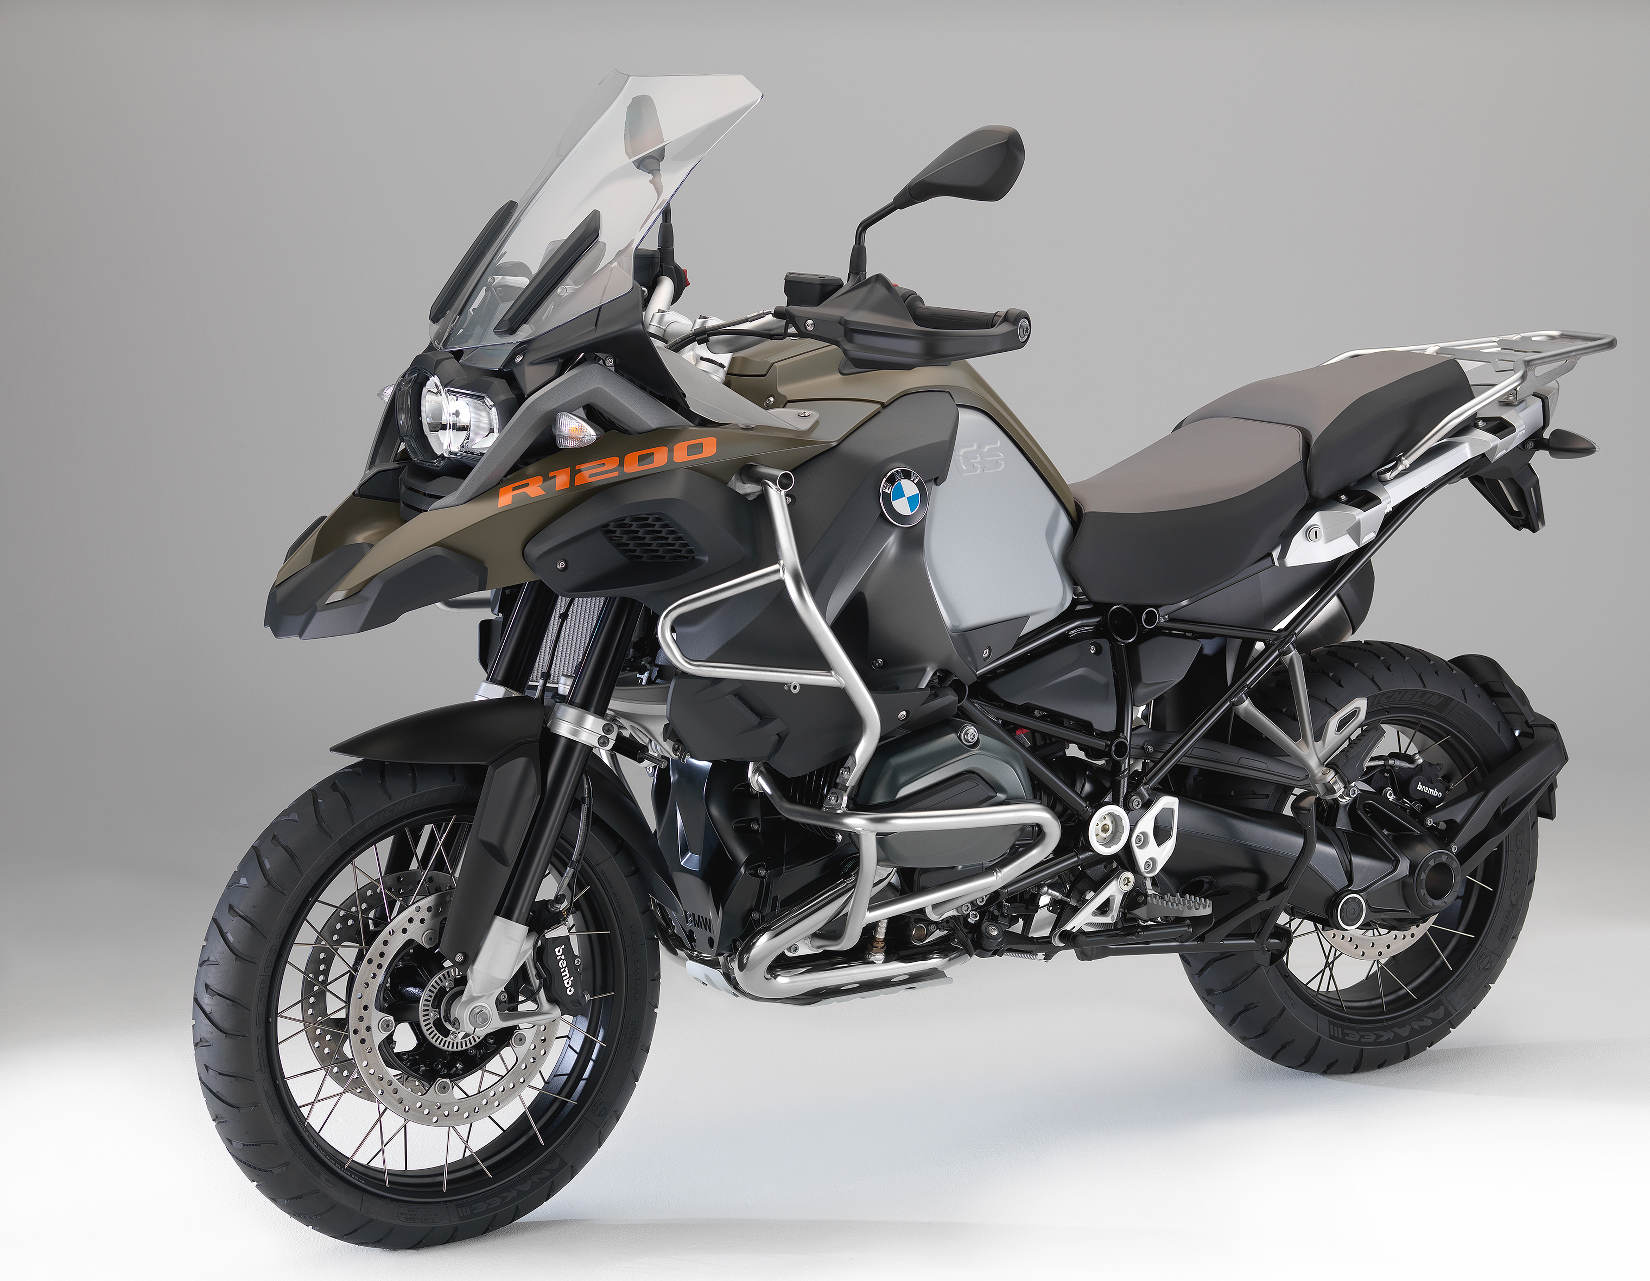 BMW R1200GS images #8208